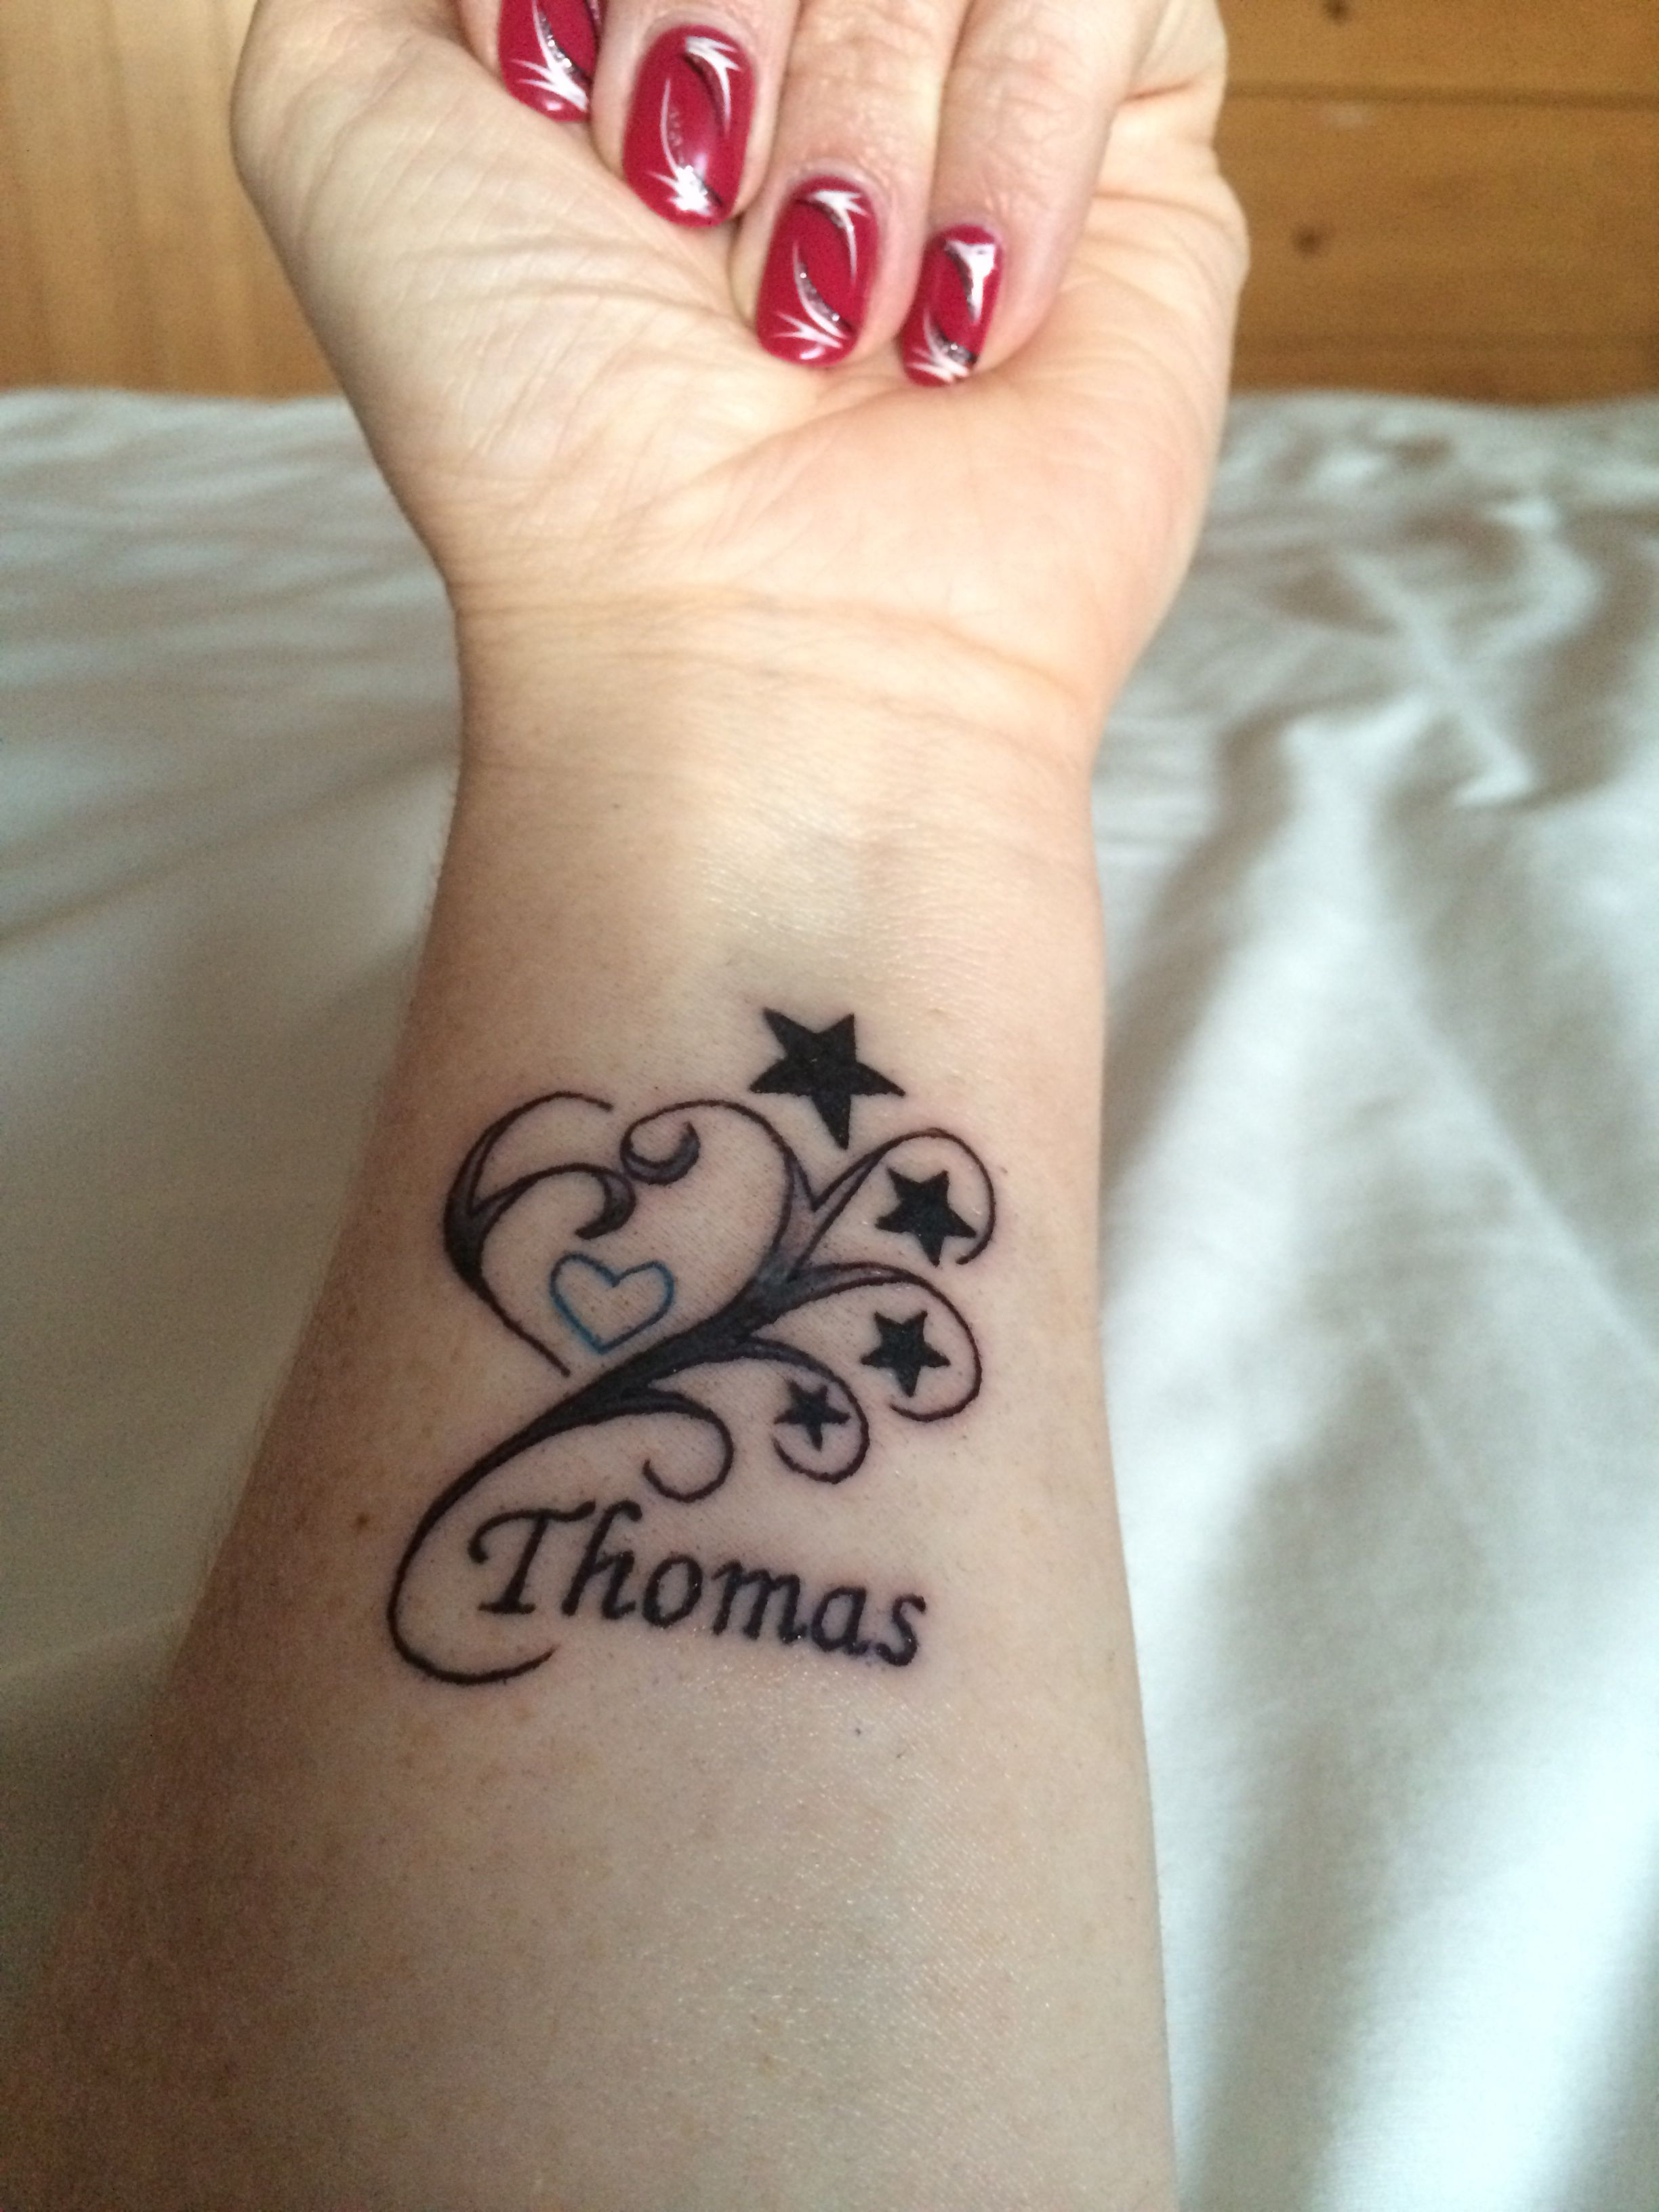 Small Tattoo Ideas For Mother And Daughter: My New Wrist/arm Tattoo Done For My Son Thomas. A Blue